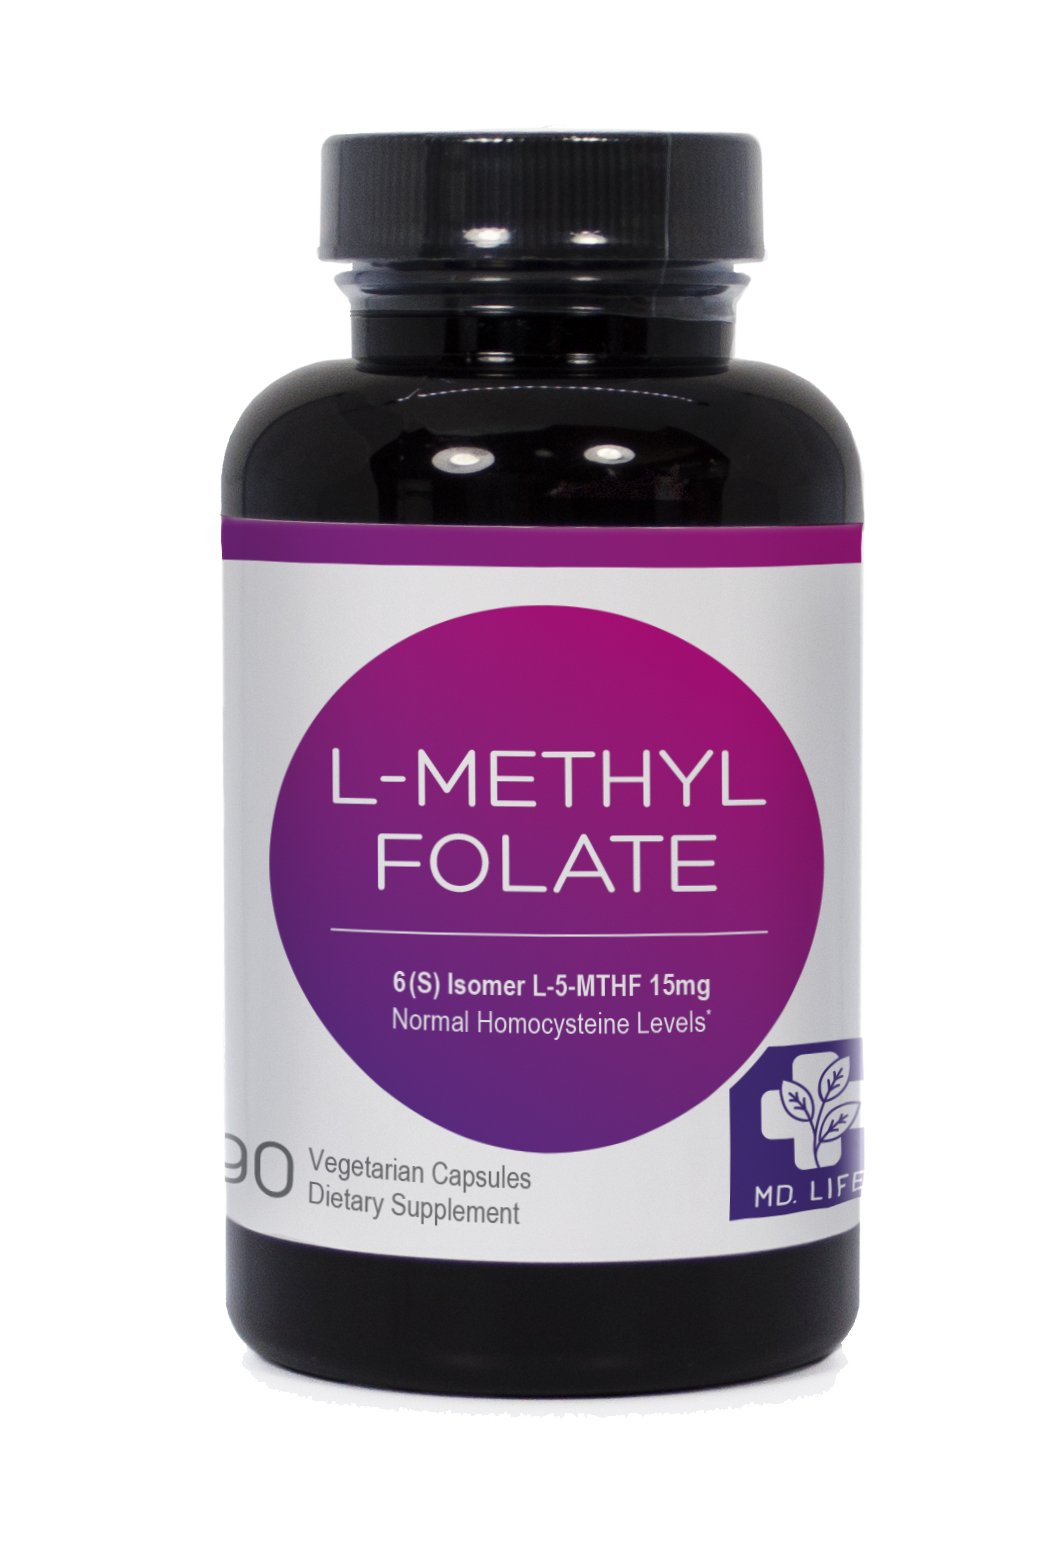 Save $$$ MD Live 5-MTHF L-Methylfolate 15MG Professional Strength Active Folate 90 Capsules by MD.LIFE